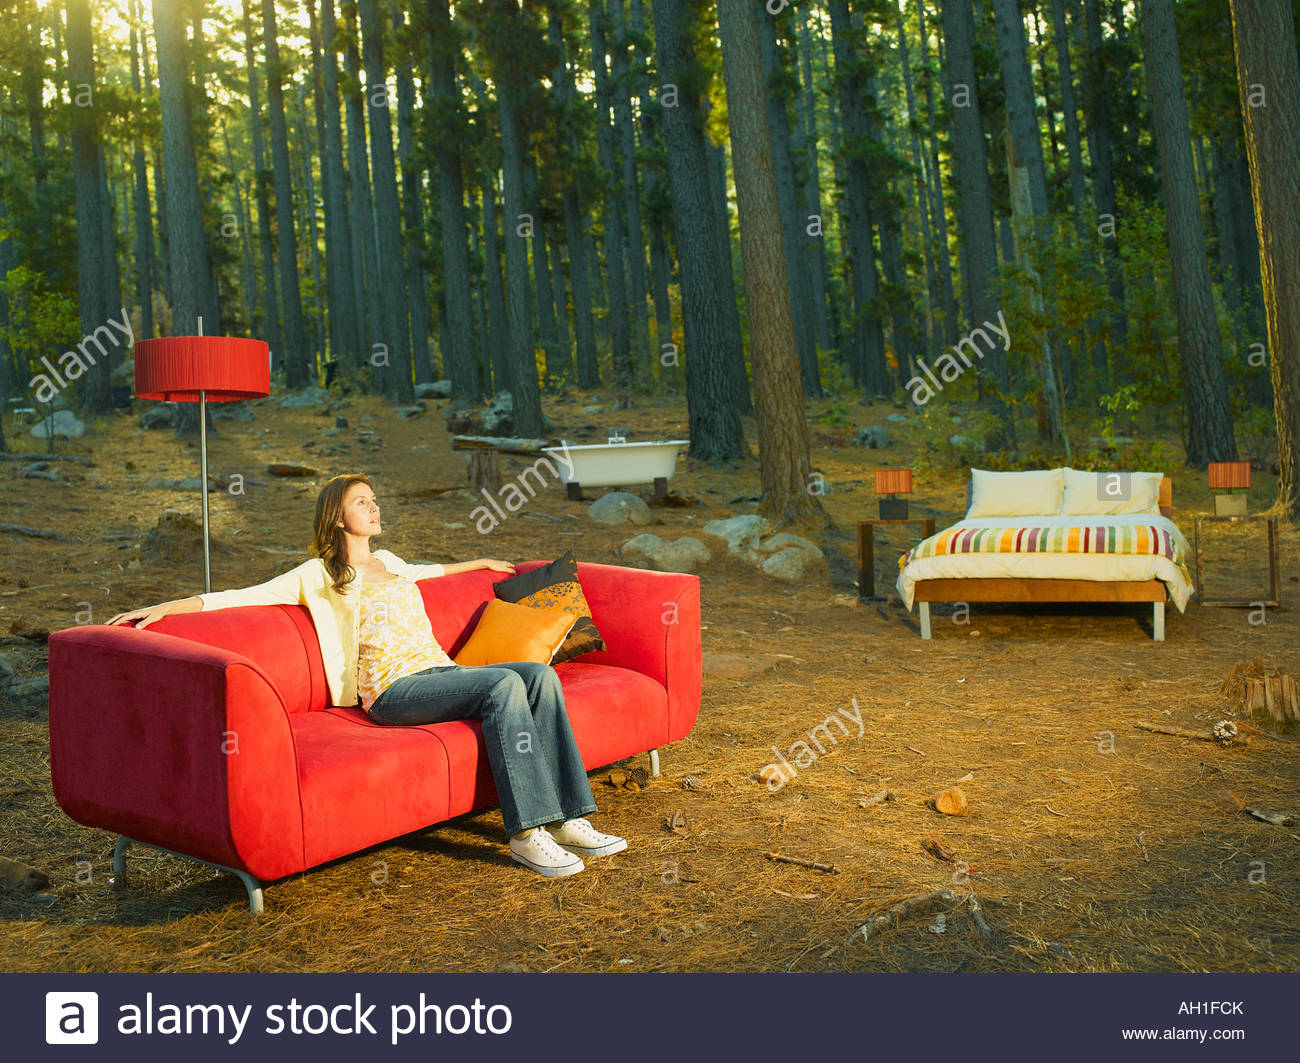 A woman with home furnishings sitting outdoors in the woods - Stock Image